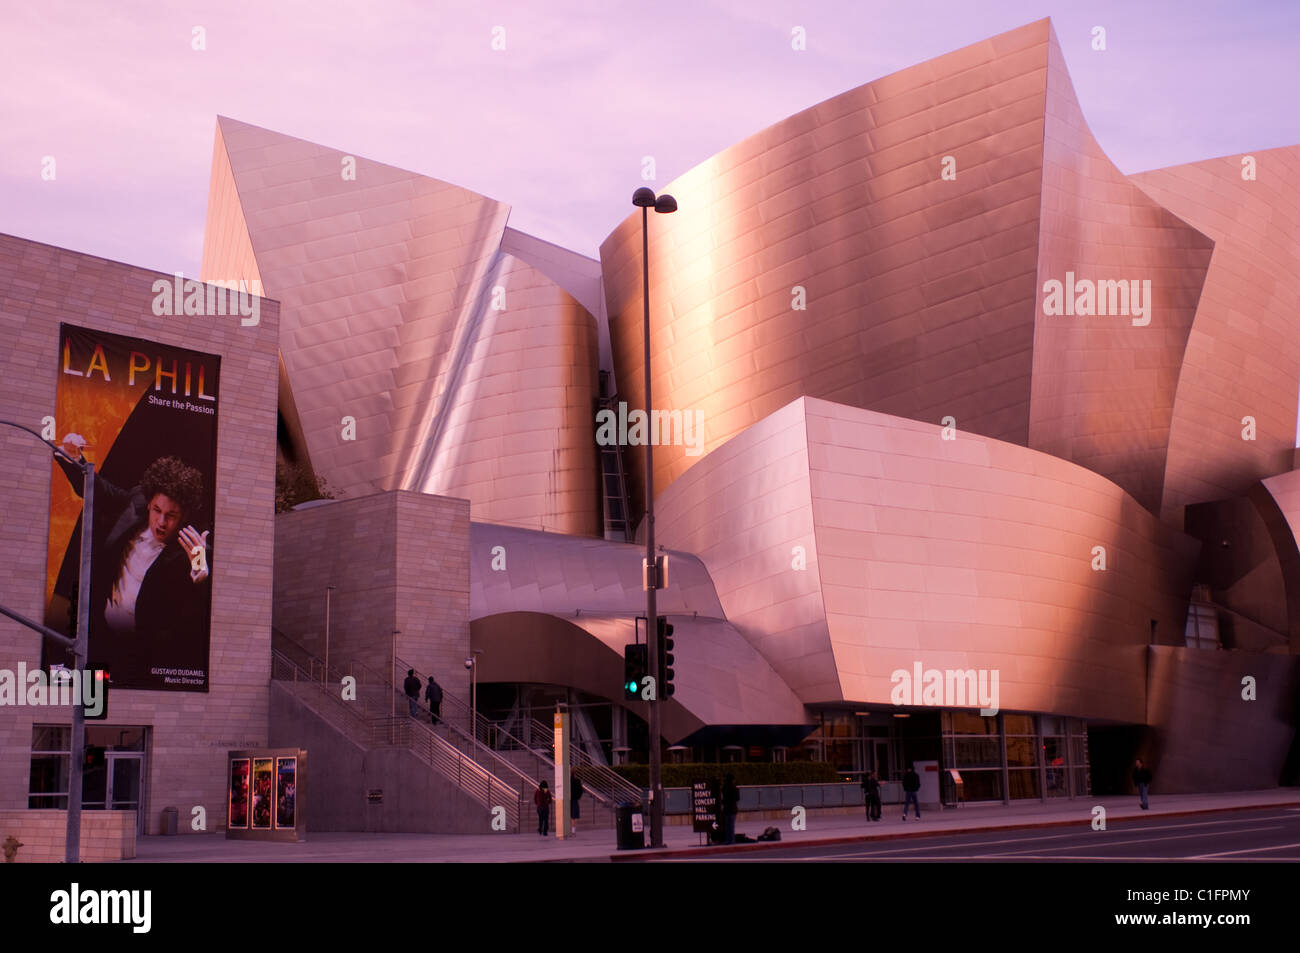 Architect Frank Gehry's Disney Concert Hall in downtown Los Angeles Southern California USA - Stock Image